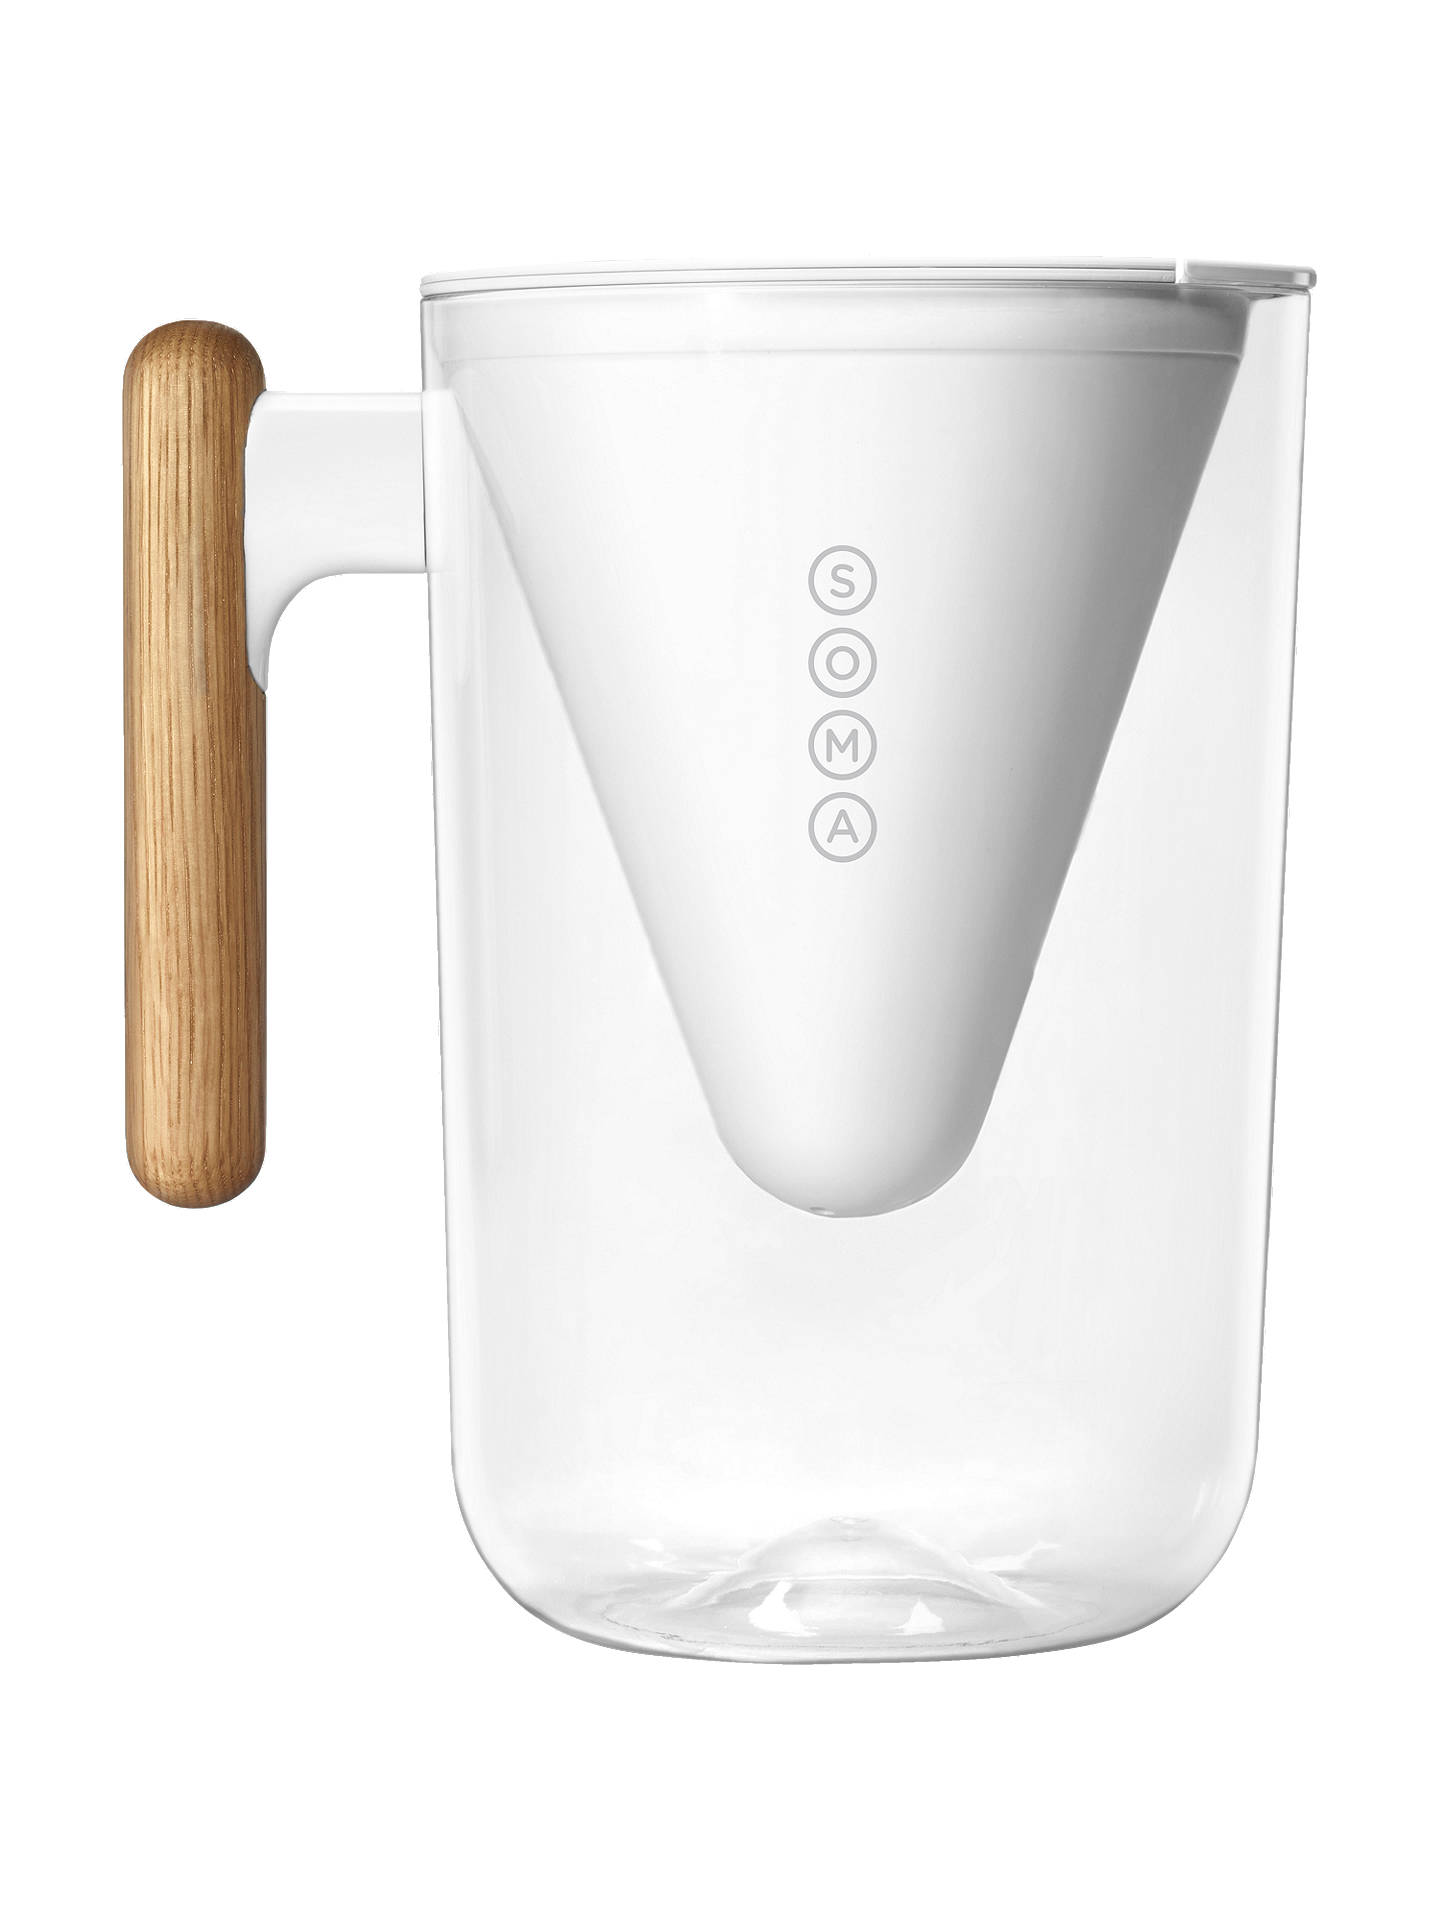 Buy Soma 6 Cup Water Filter Pitcher, White, 1.35L Online at johnlewis.com